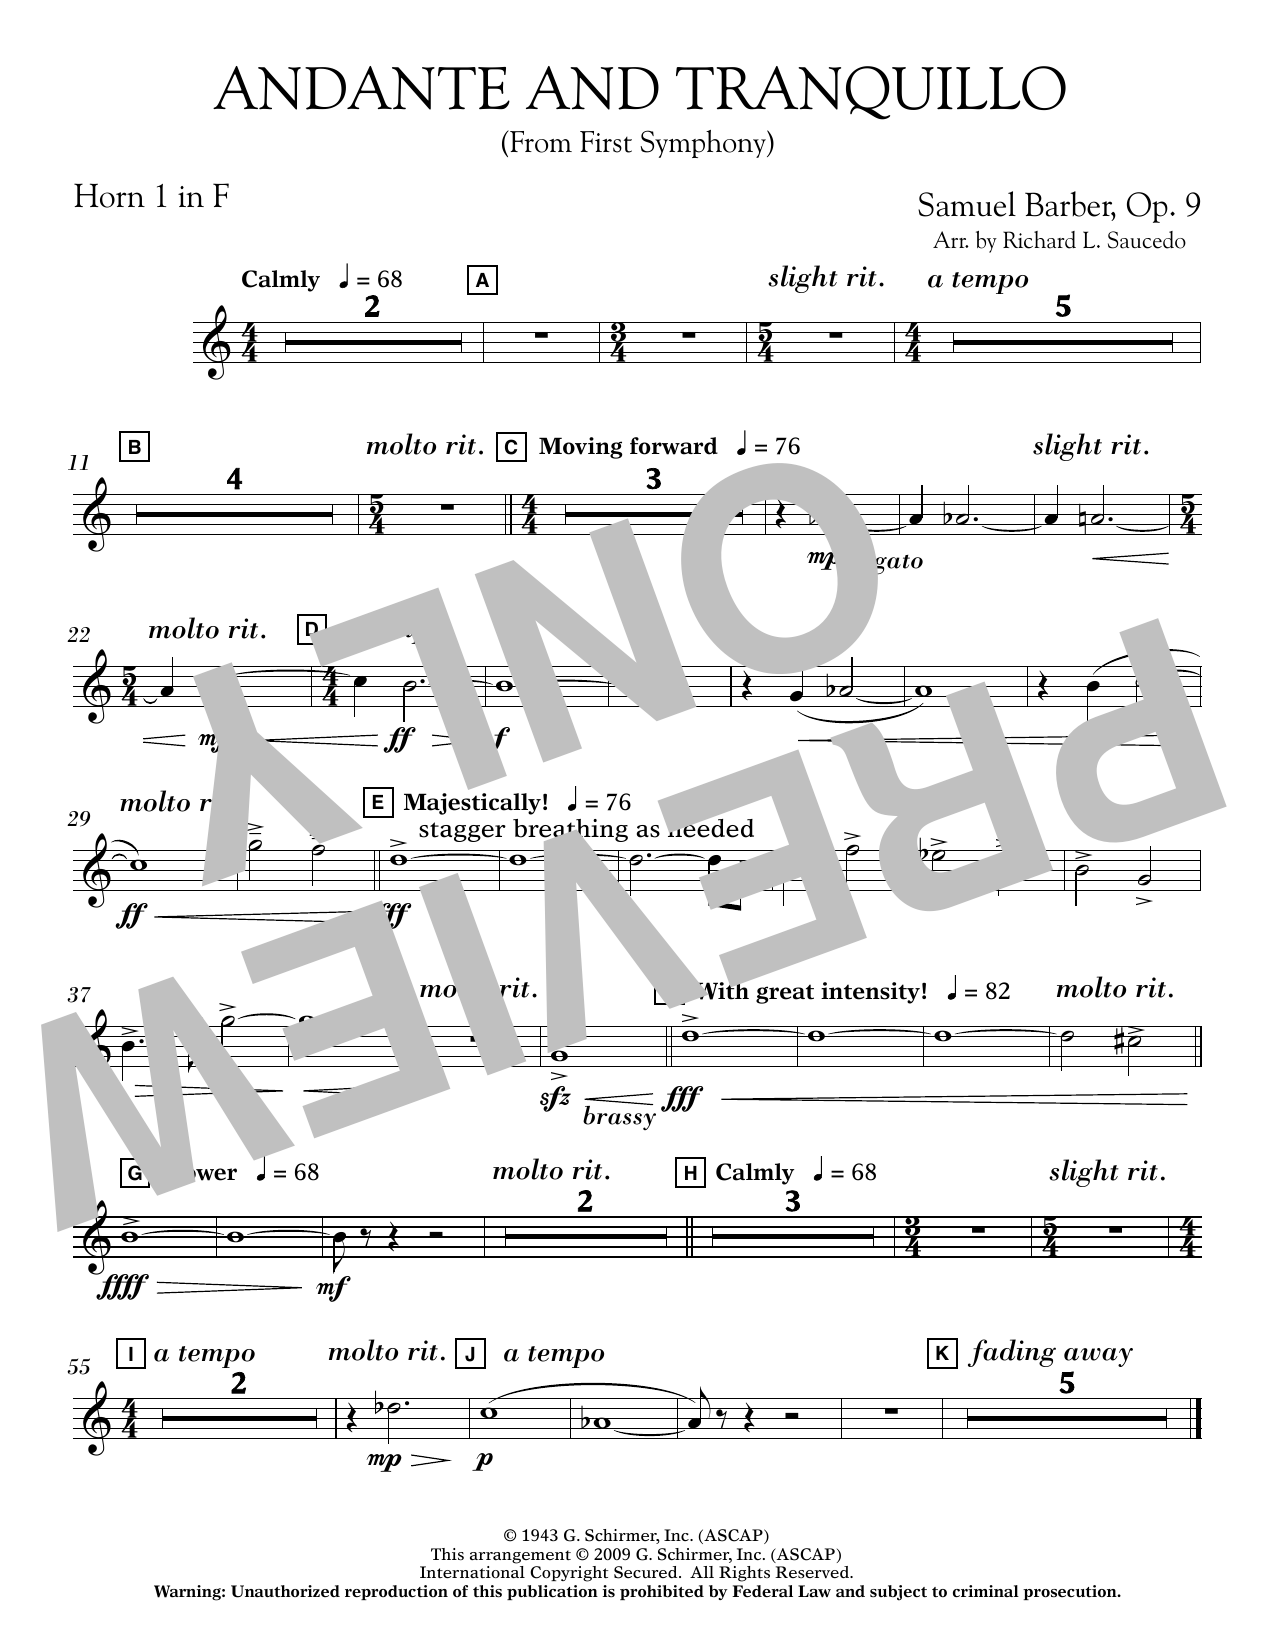 Andante and Tranquillo (from First Symphony) - F Horn 1 Sheet Music